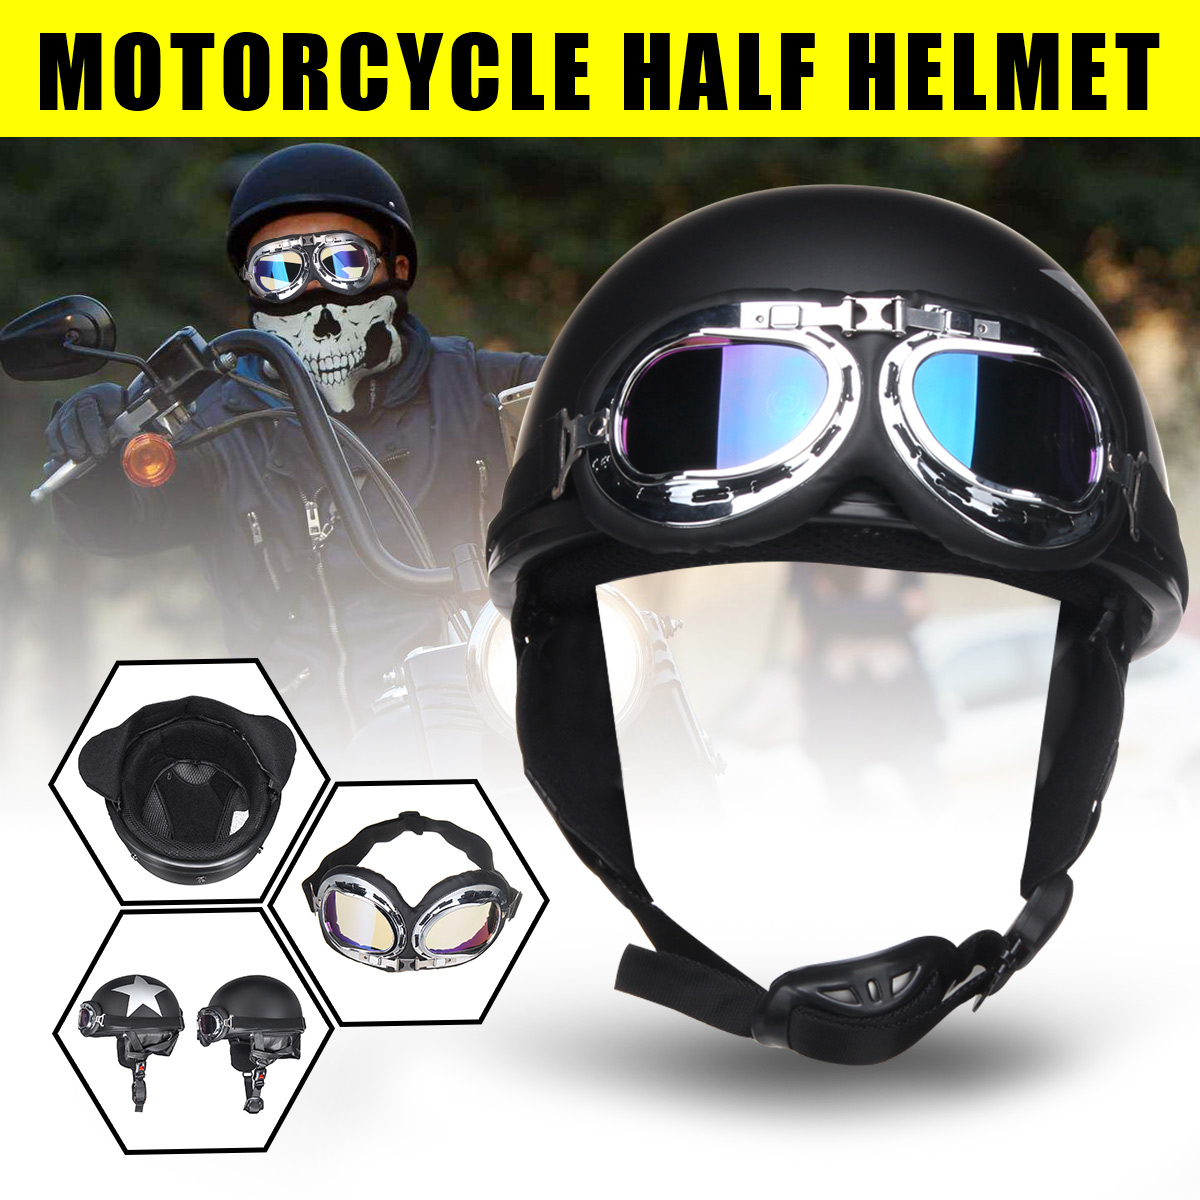 Open Face Safety Half Helmet With UV Goggle Retro Motorcycle Helmet Star Pattern Motorcycle Accessories Parts Protective Gears